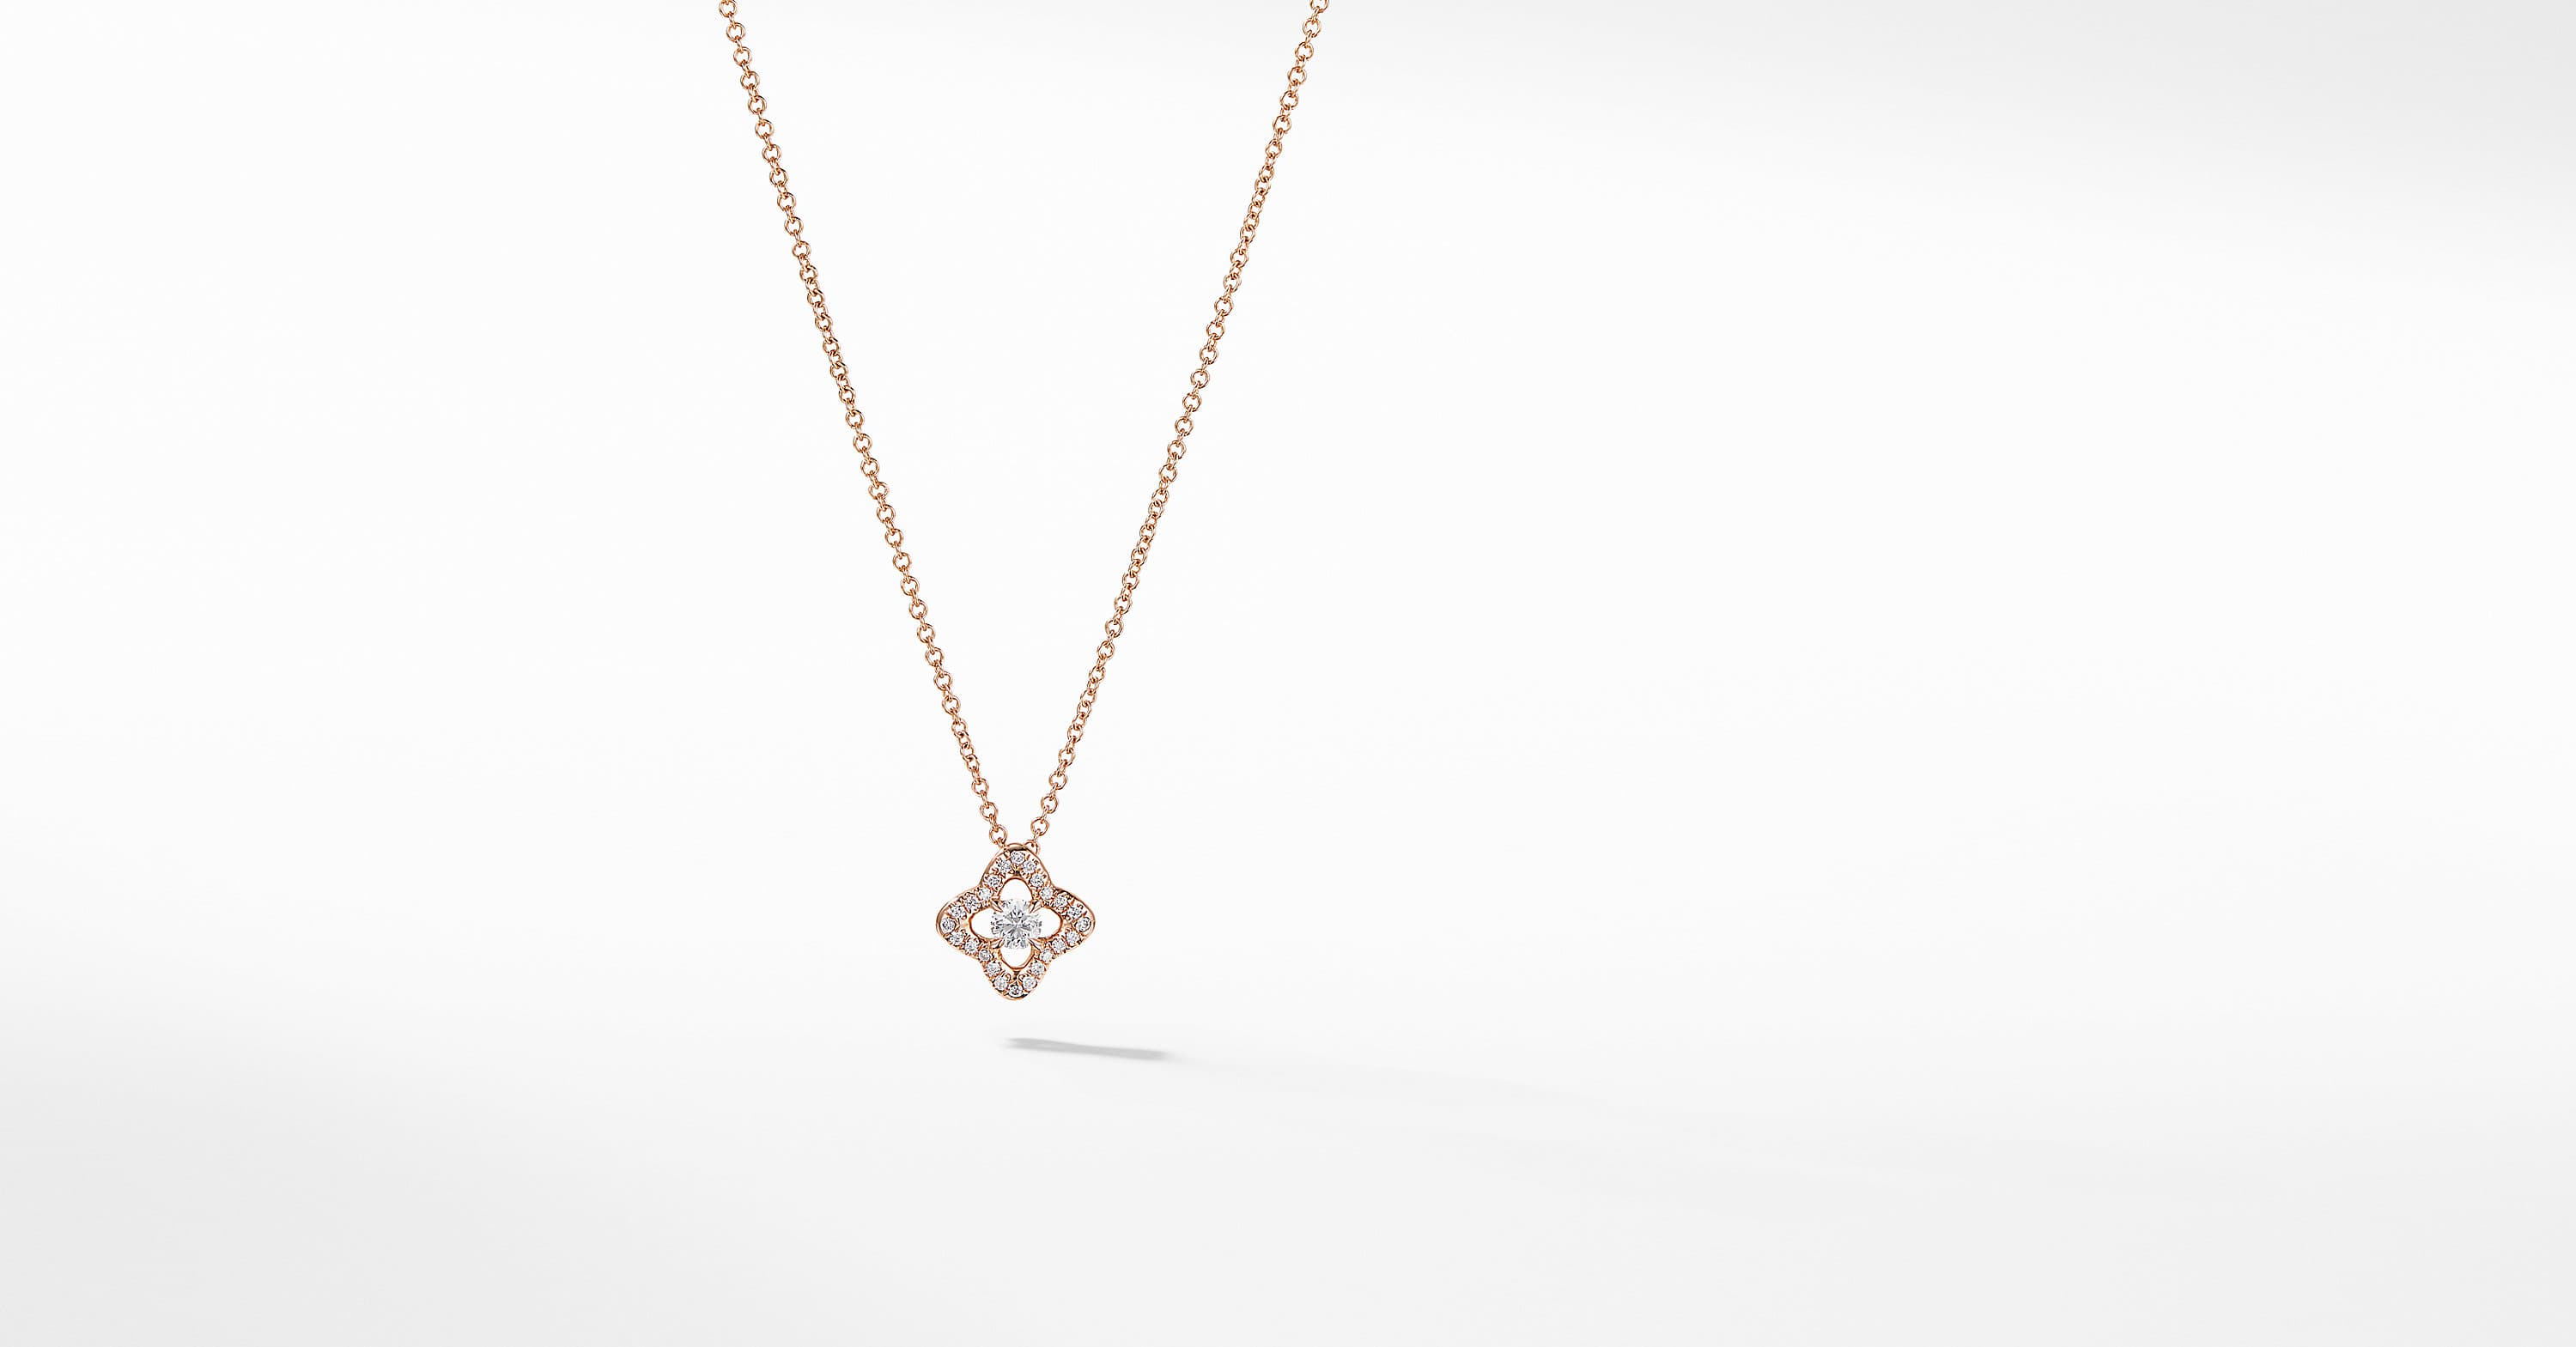 Collier Venetian Quatrefoil en diamants et or rose 18 carats